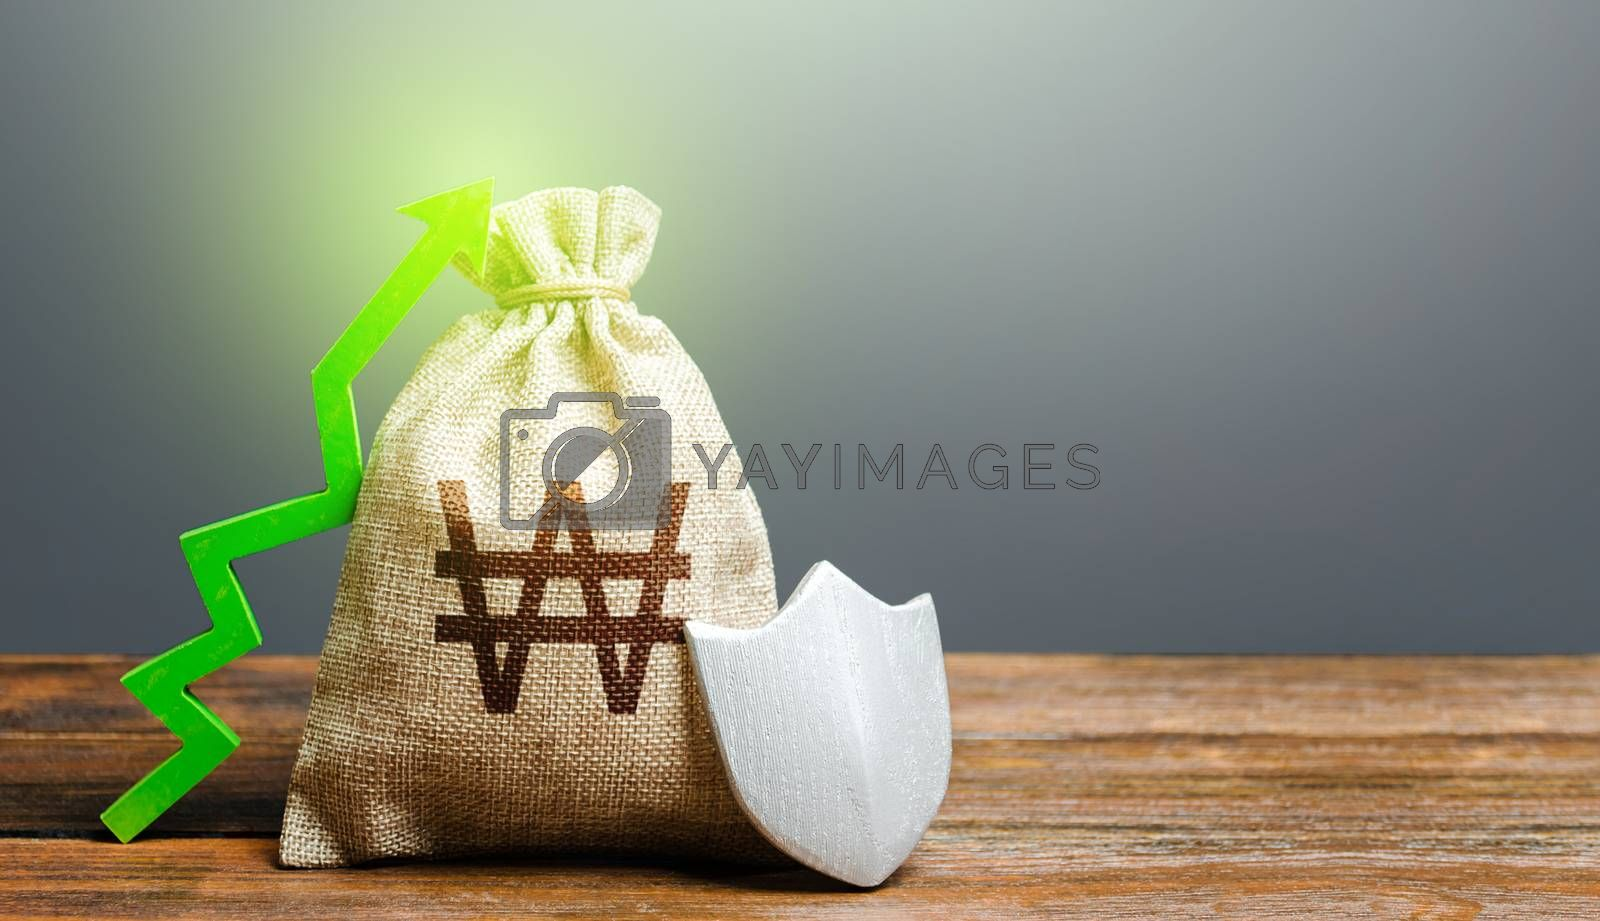 South korean won money bag with a shield and a green arrow up. Safety security of investments, financial system stability. Increasing the maximum amount of guaranteed deposits insurance compensation.